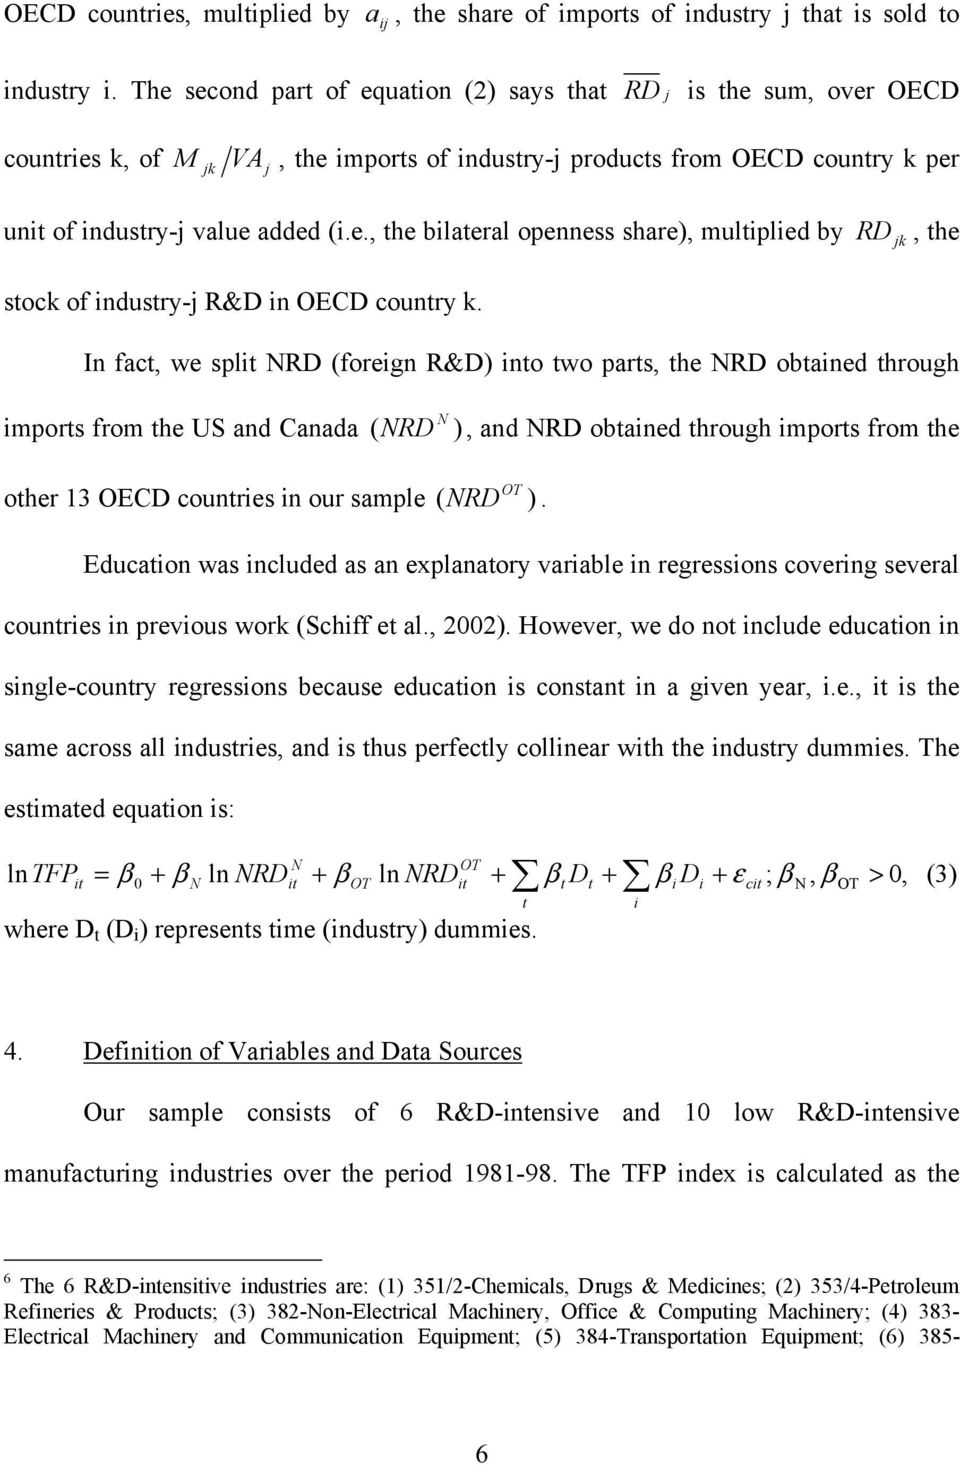 In fact, we split NRD (foreign R&D) into two parts, the NRD obtained through imports from the US and Canada ( NRD N ), and NRD obtained through imports from the other 13 OECD countries in our sample